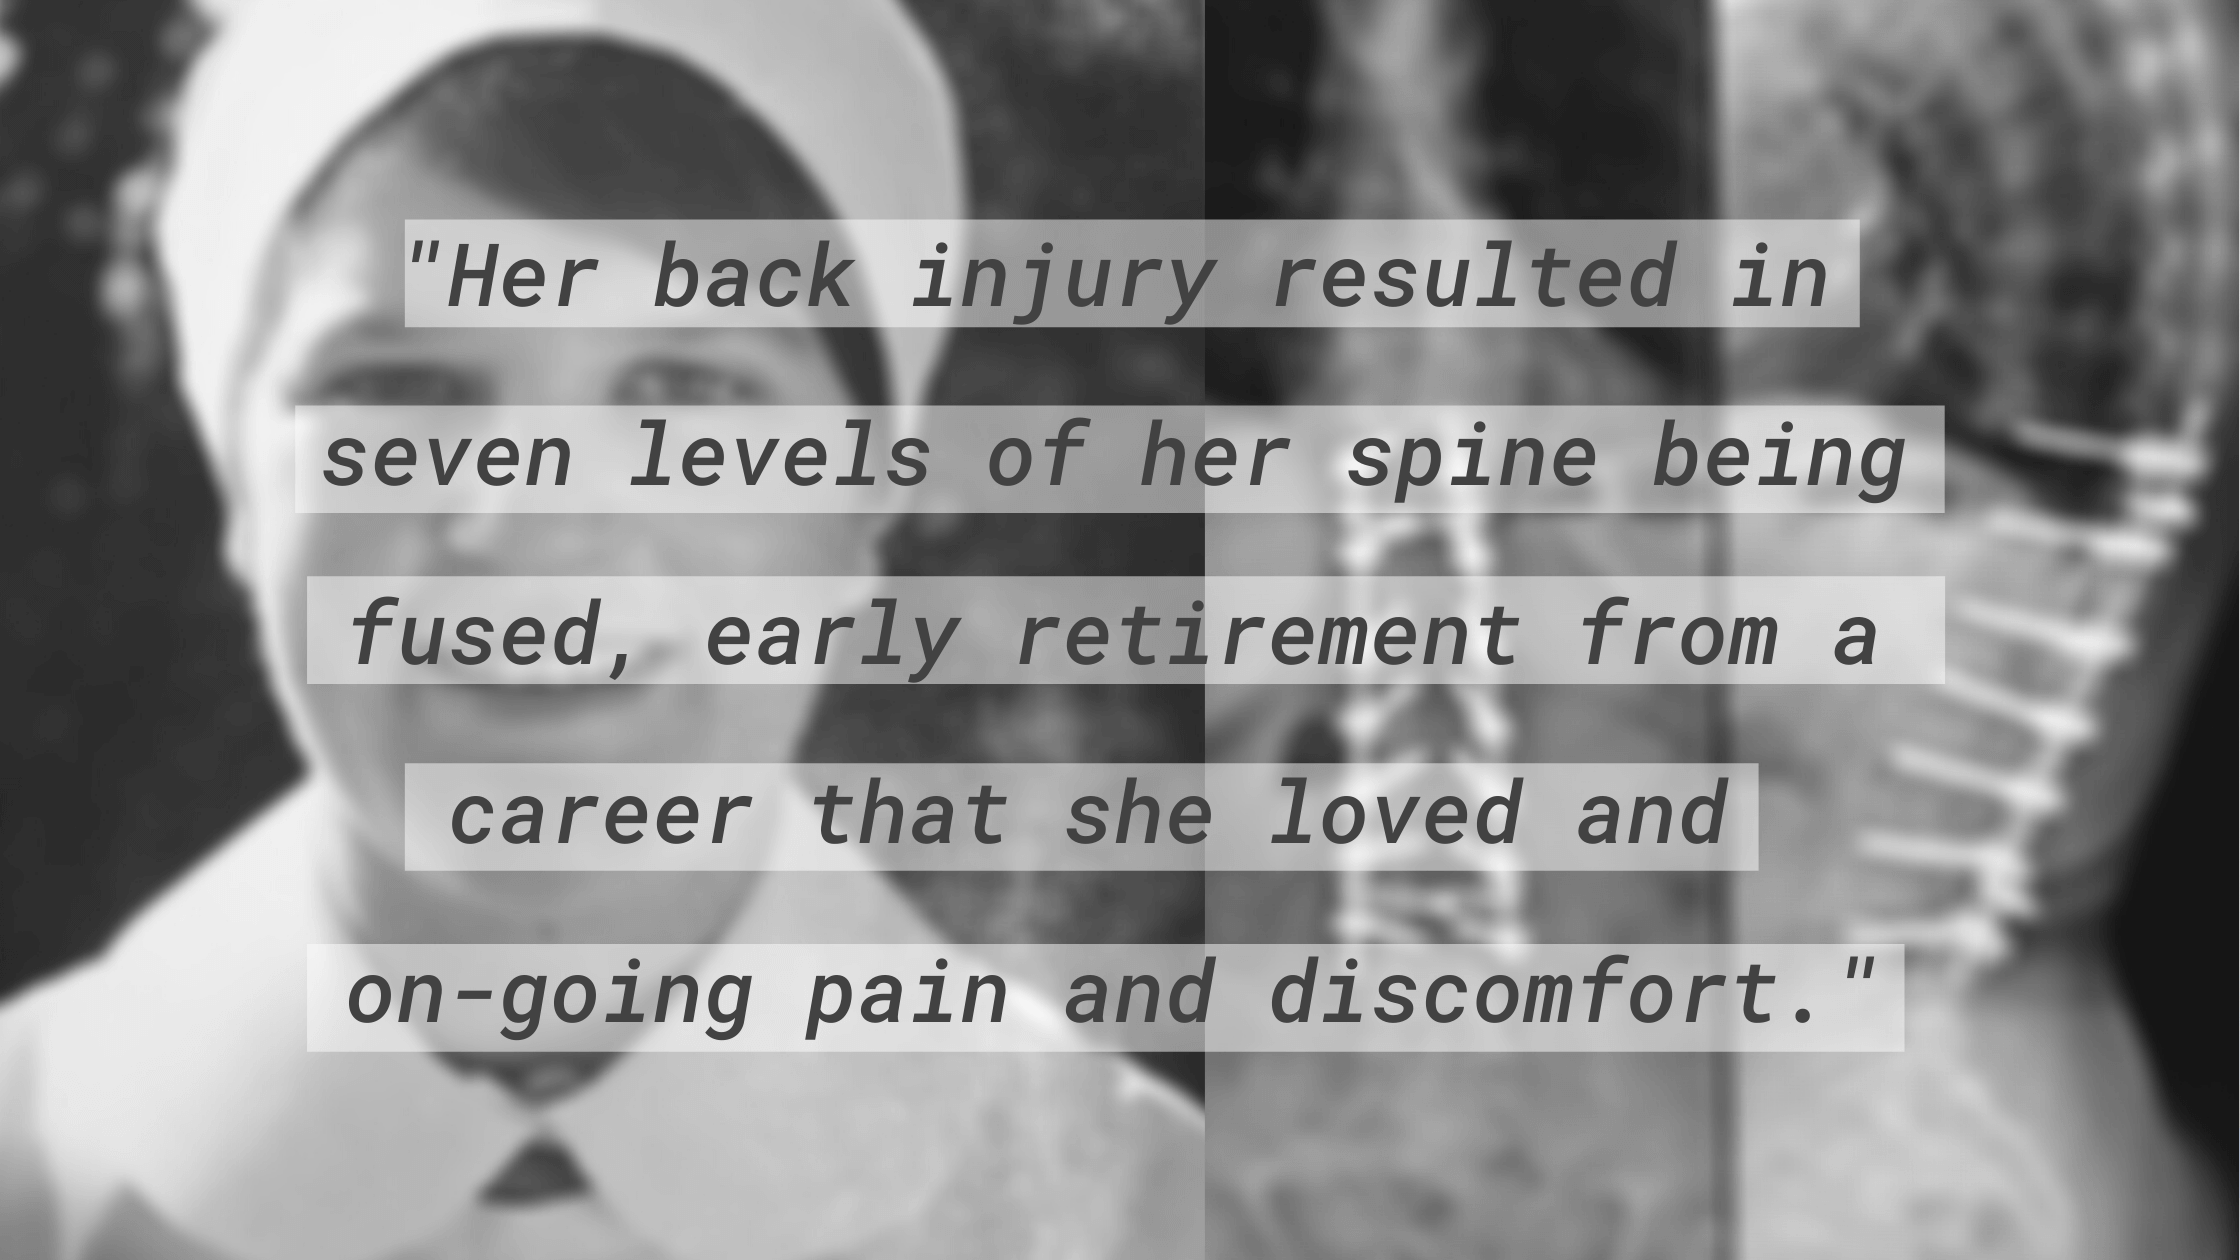 """""""Her back injury resulted in seven levels of her spine being fused, early retirement from a career that she loved and on-going pain and discomfort."""""""